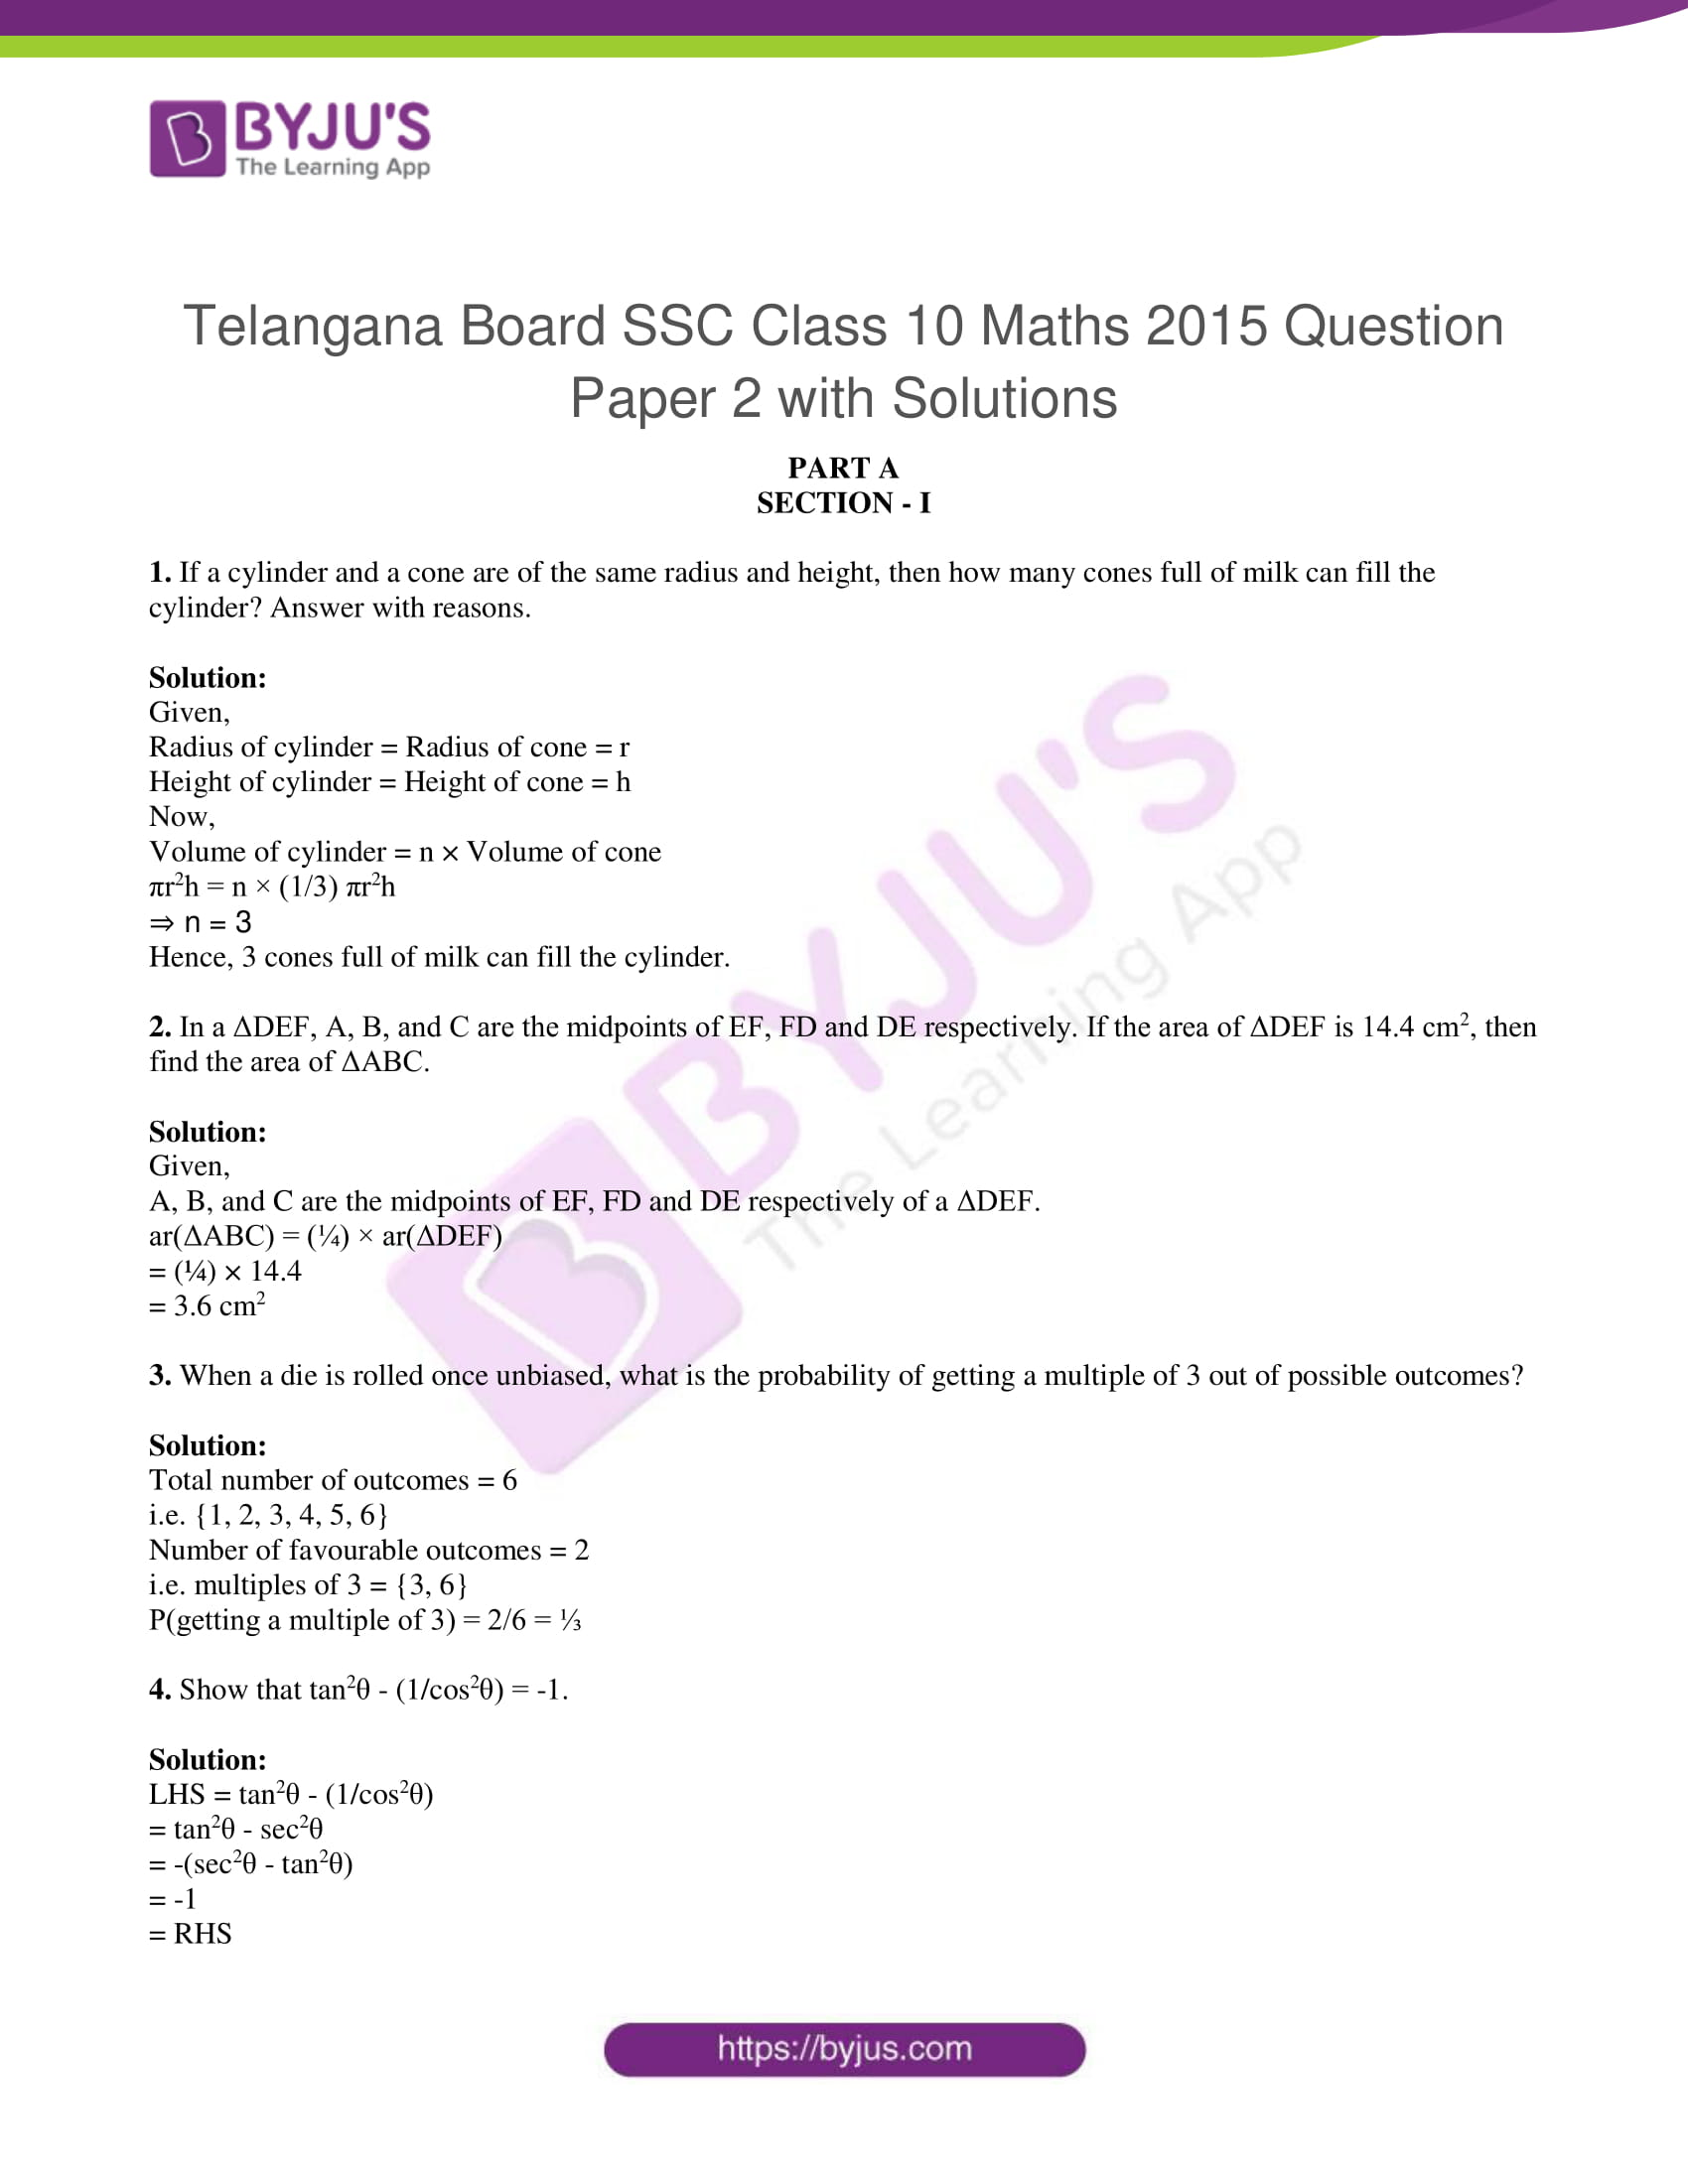 tl board ssc class 10 maths 2015 question paper 2 with sol 01